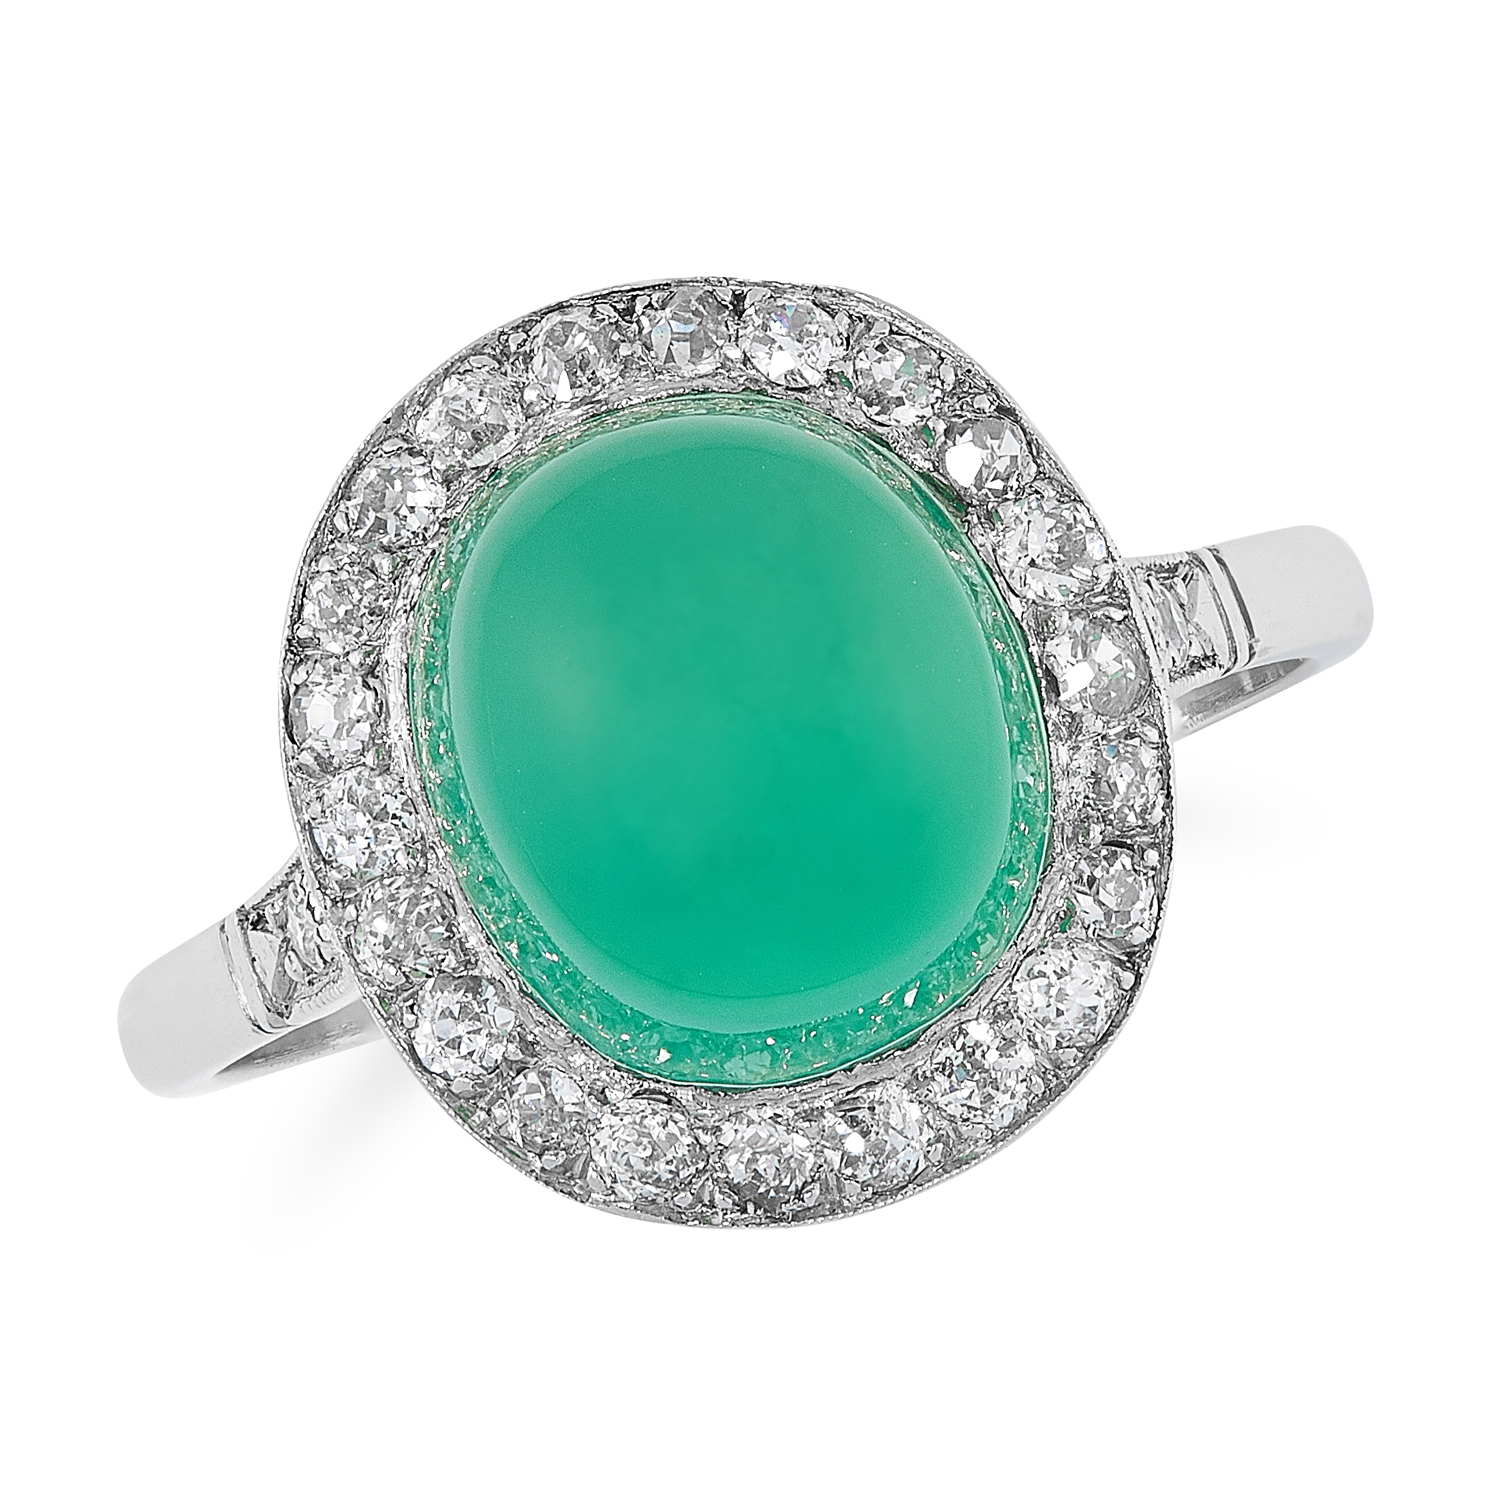 AN ANTIQUE ART DECO CHRYSOPRASE AND DIAMOND RING, EARLY 20TH CENTURY in platinum, set with a central